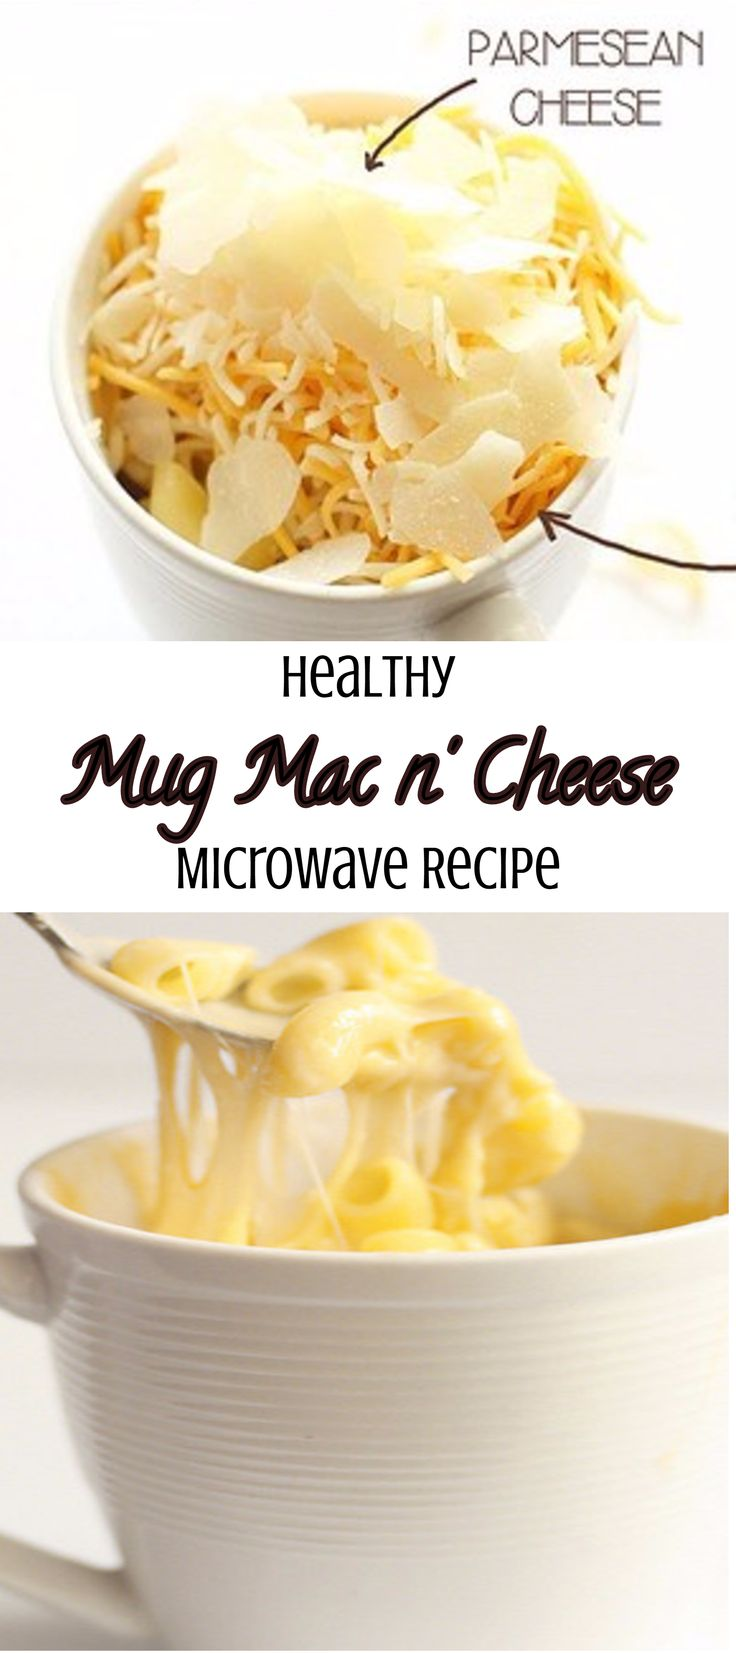 Healthy homemade mug mac n cheese in a microwave recipe